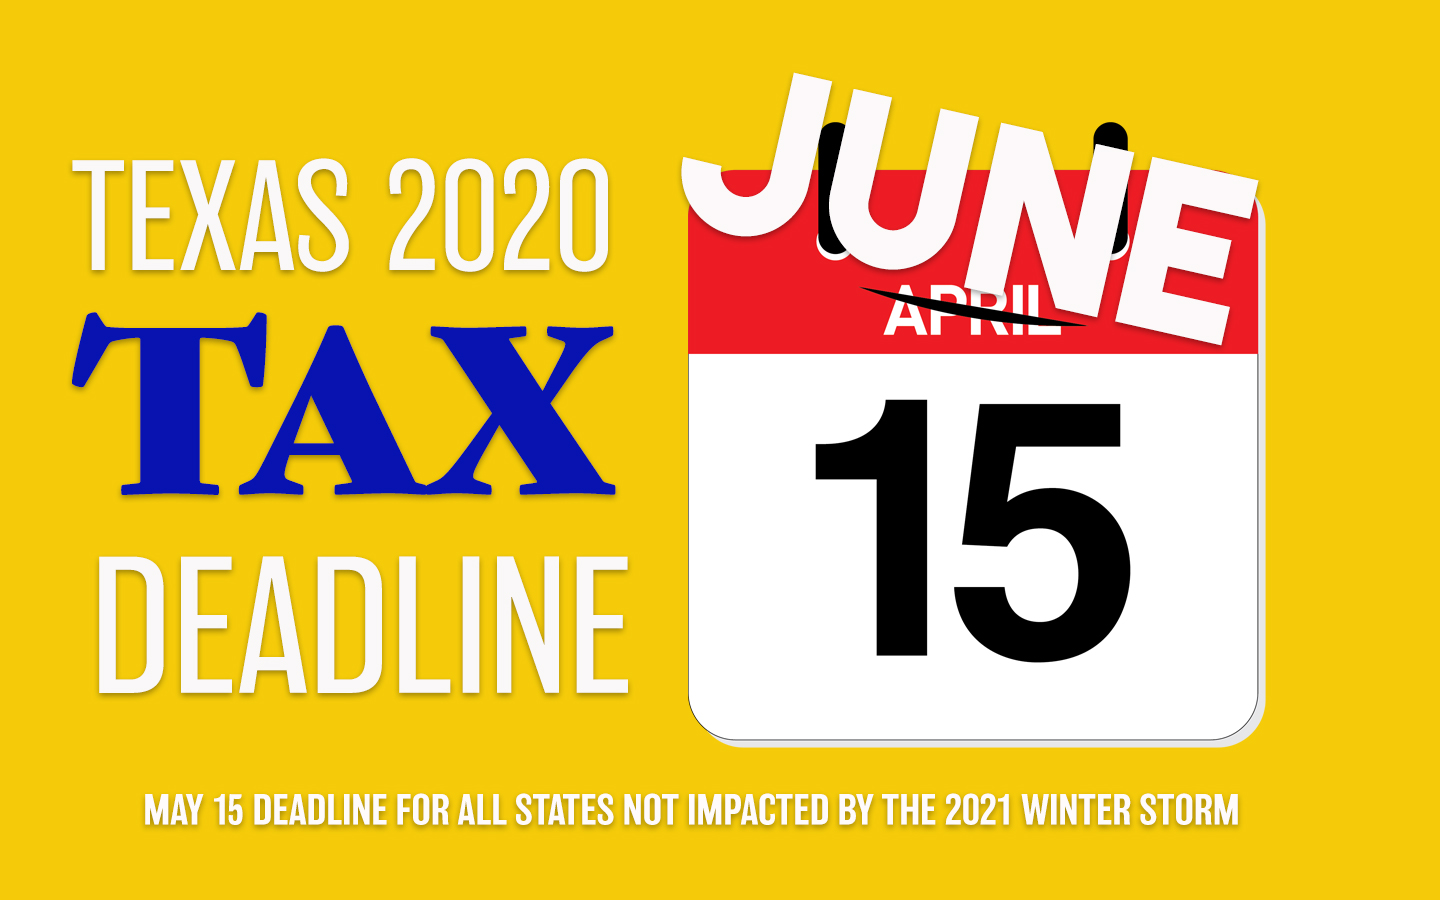 New Tax Deadline for Texas